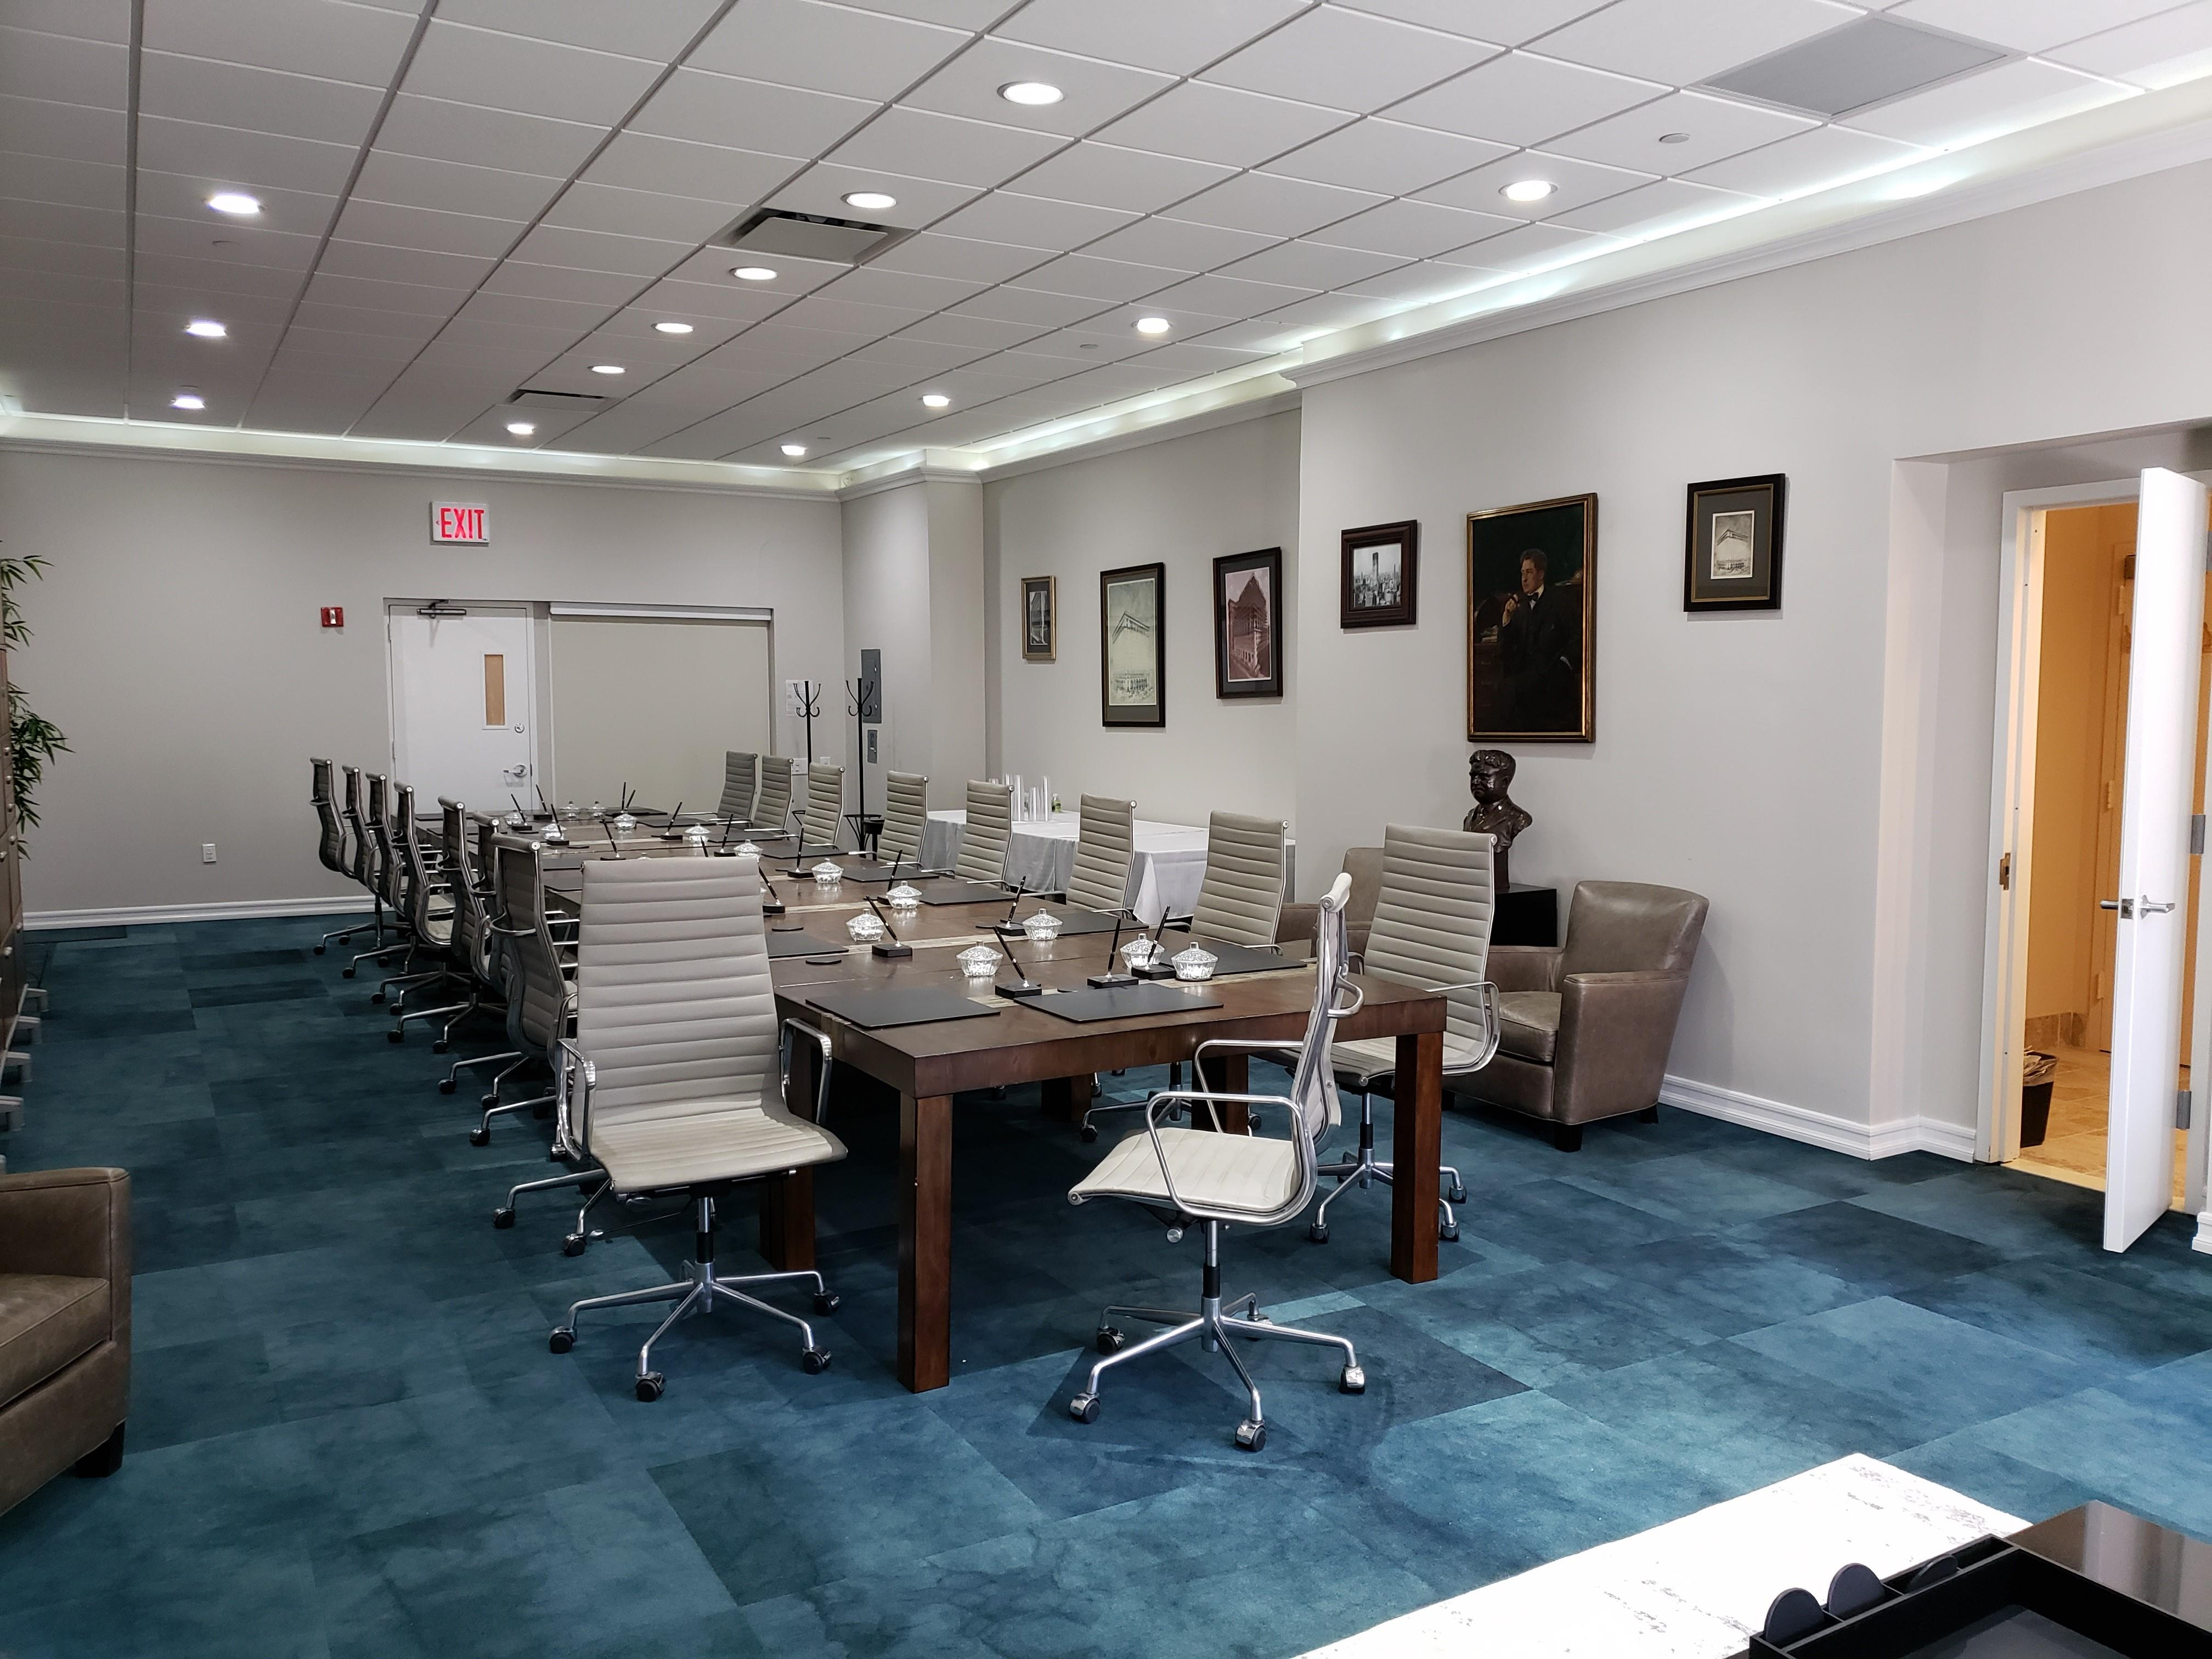 The Textile Building - Suite 1718 Board Room